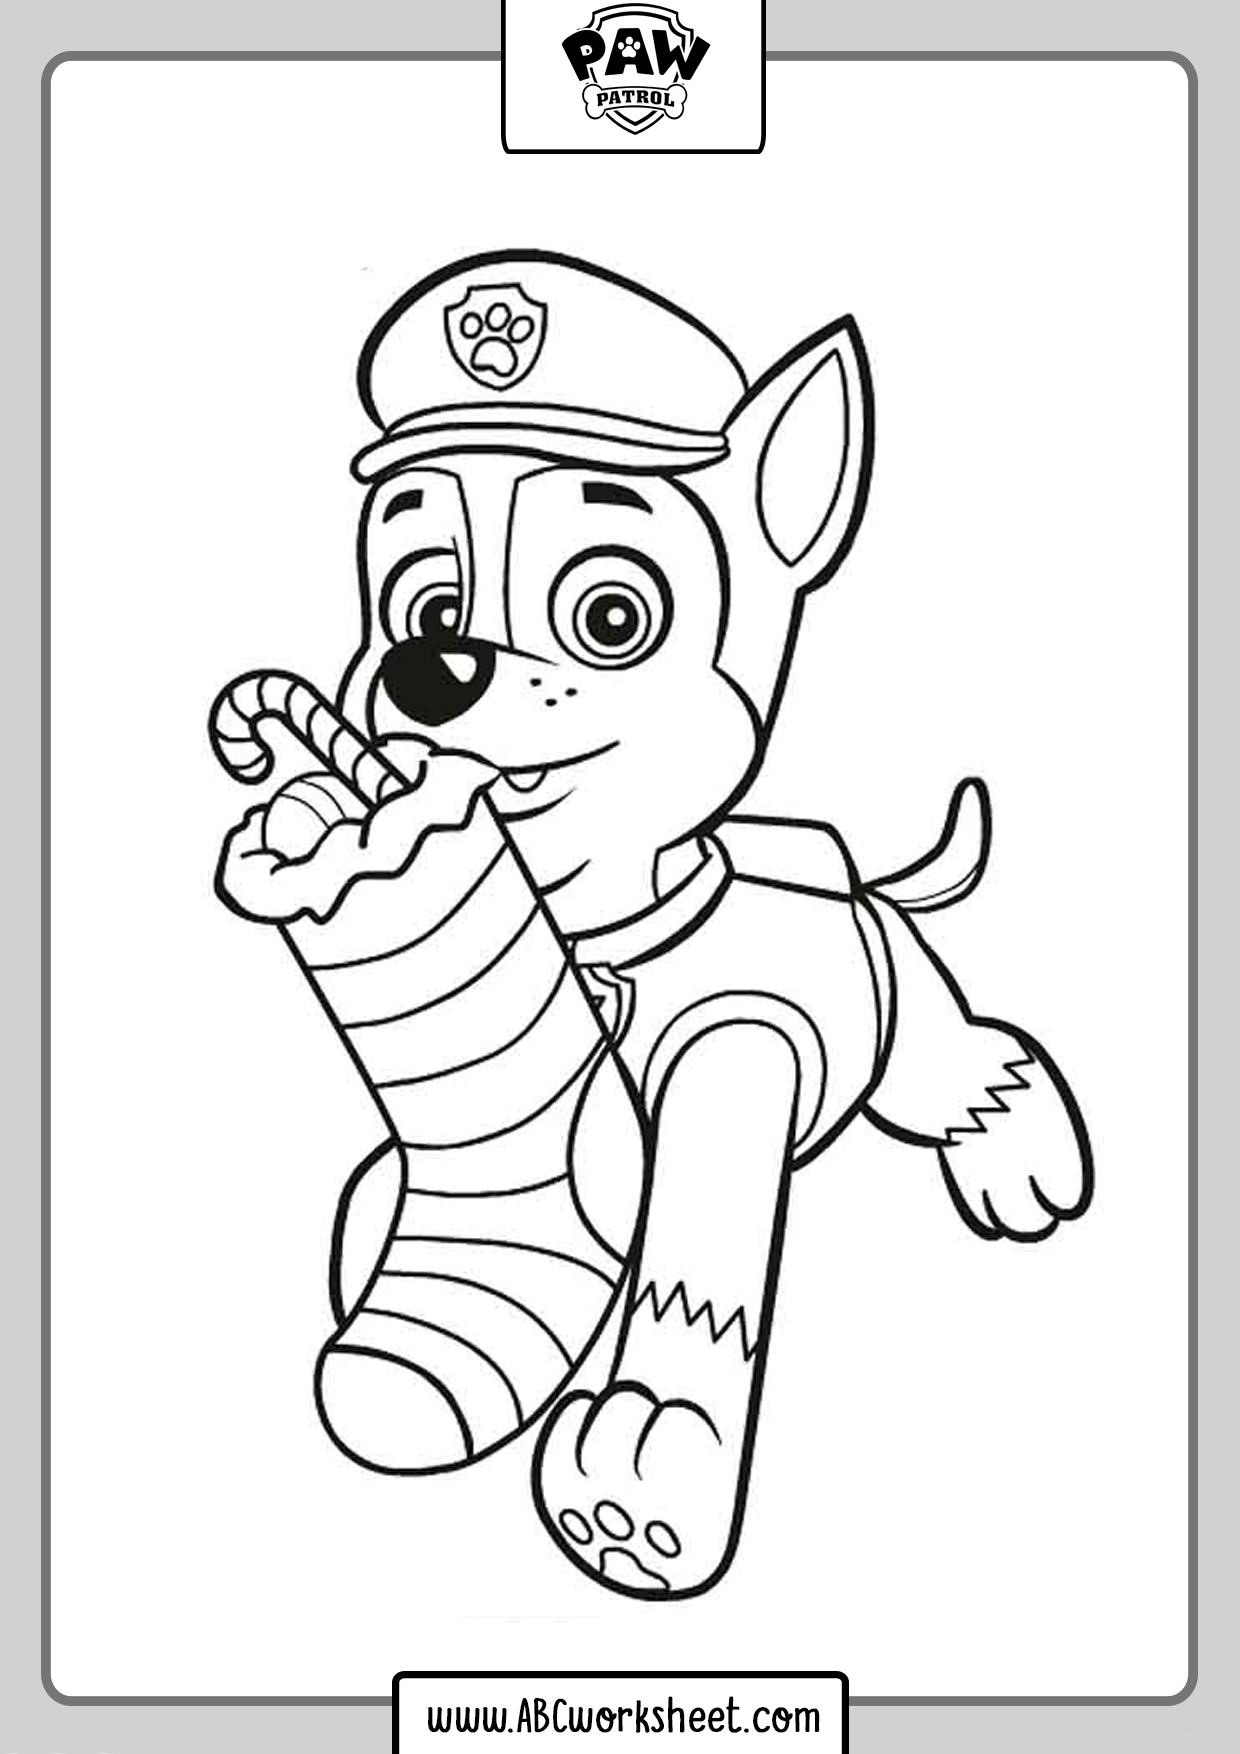 Chase Paw Patrol Drawings For Coloring